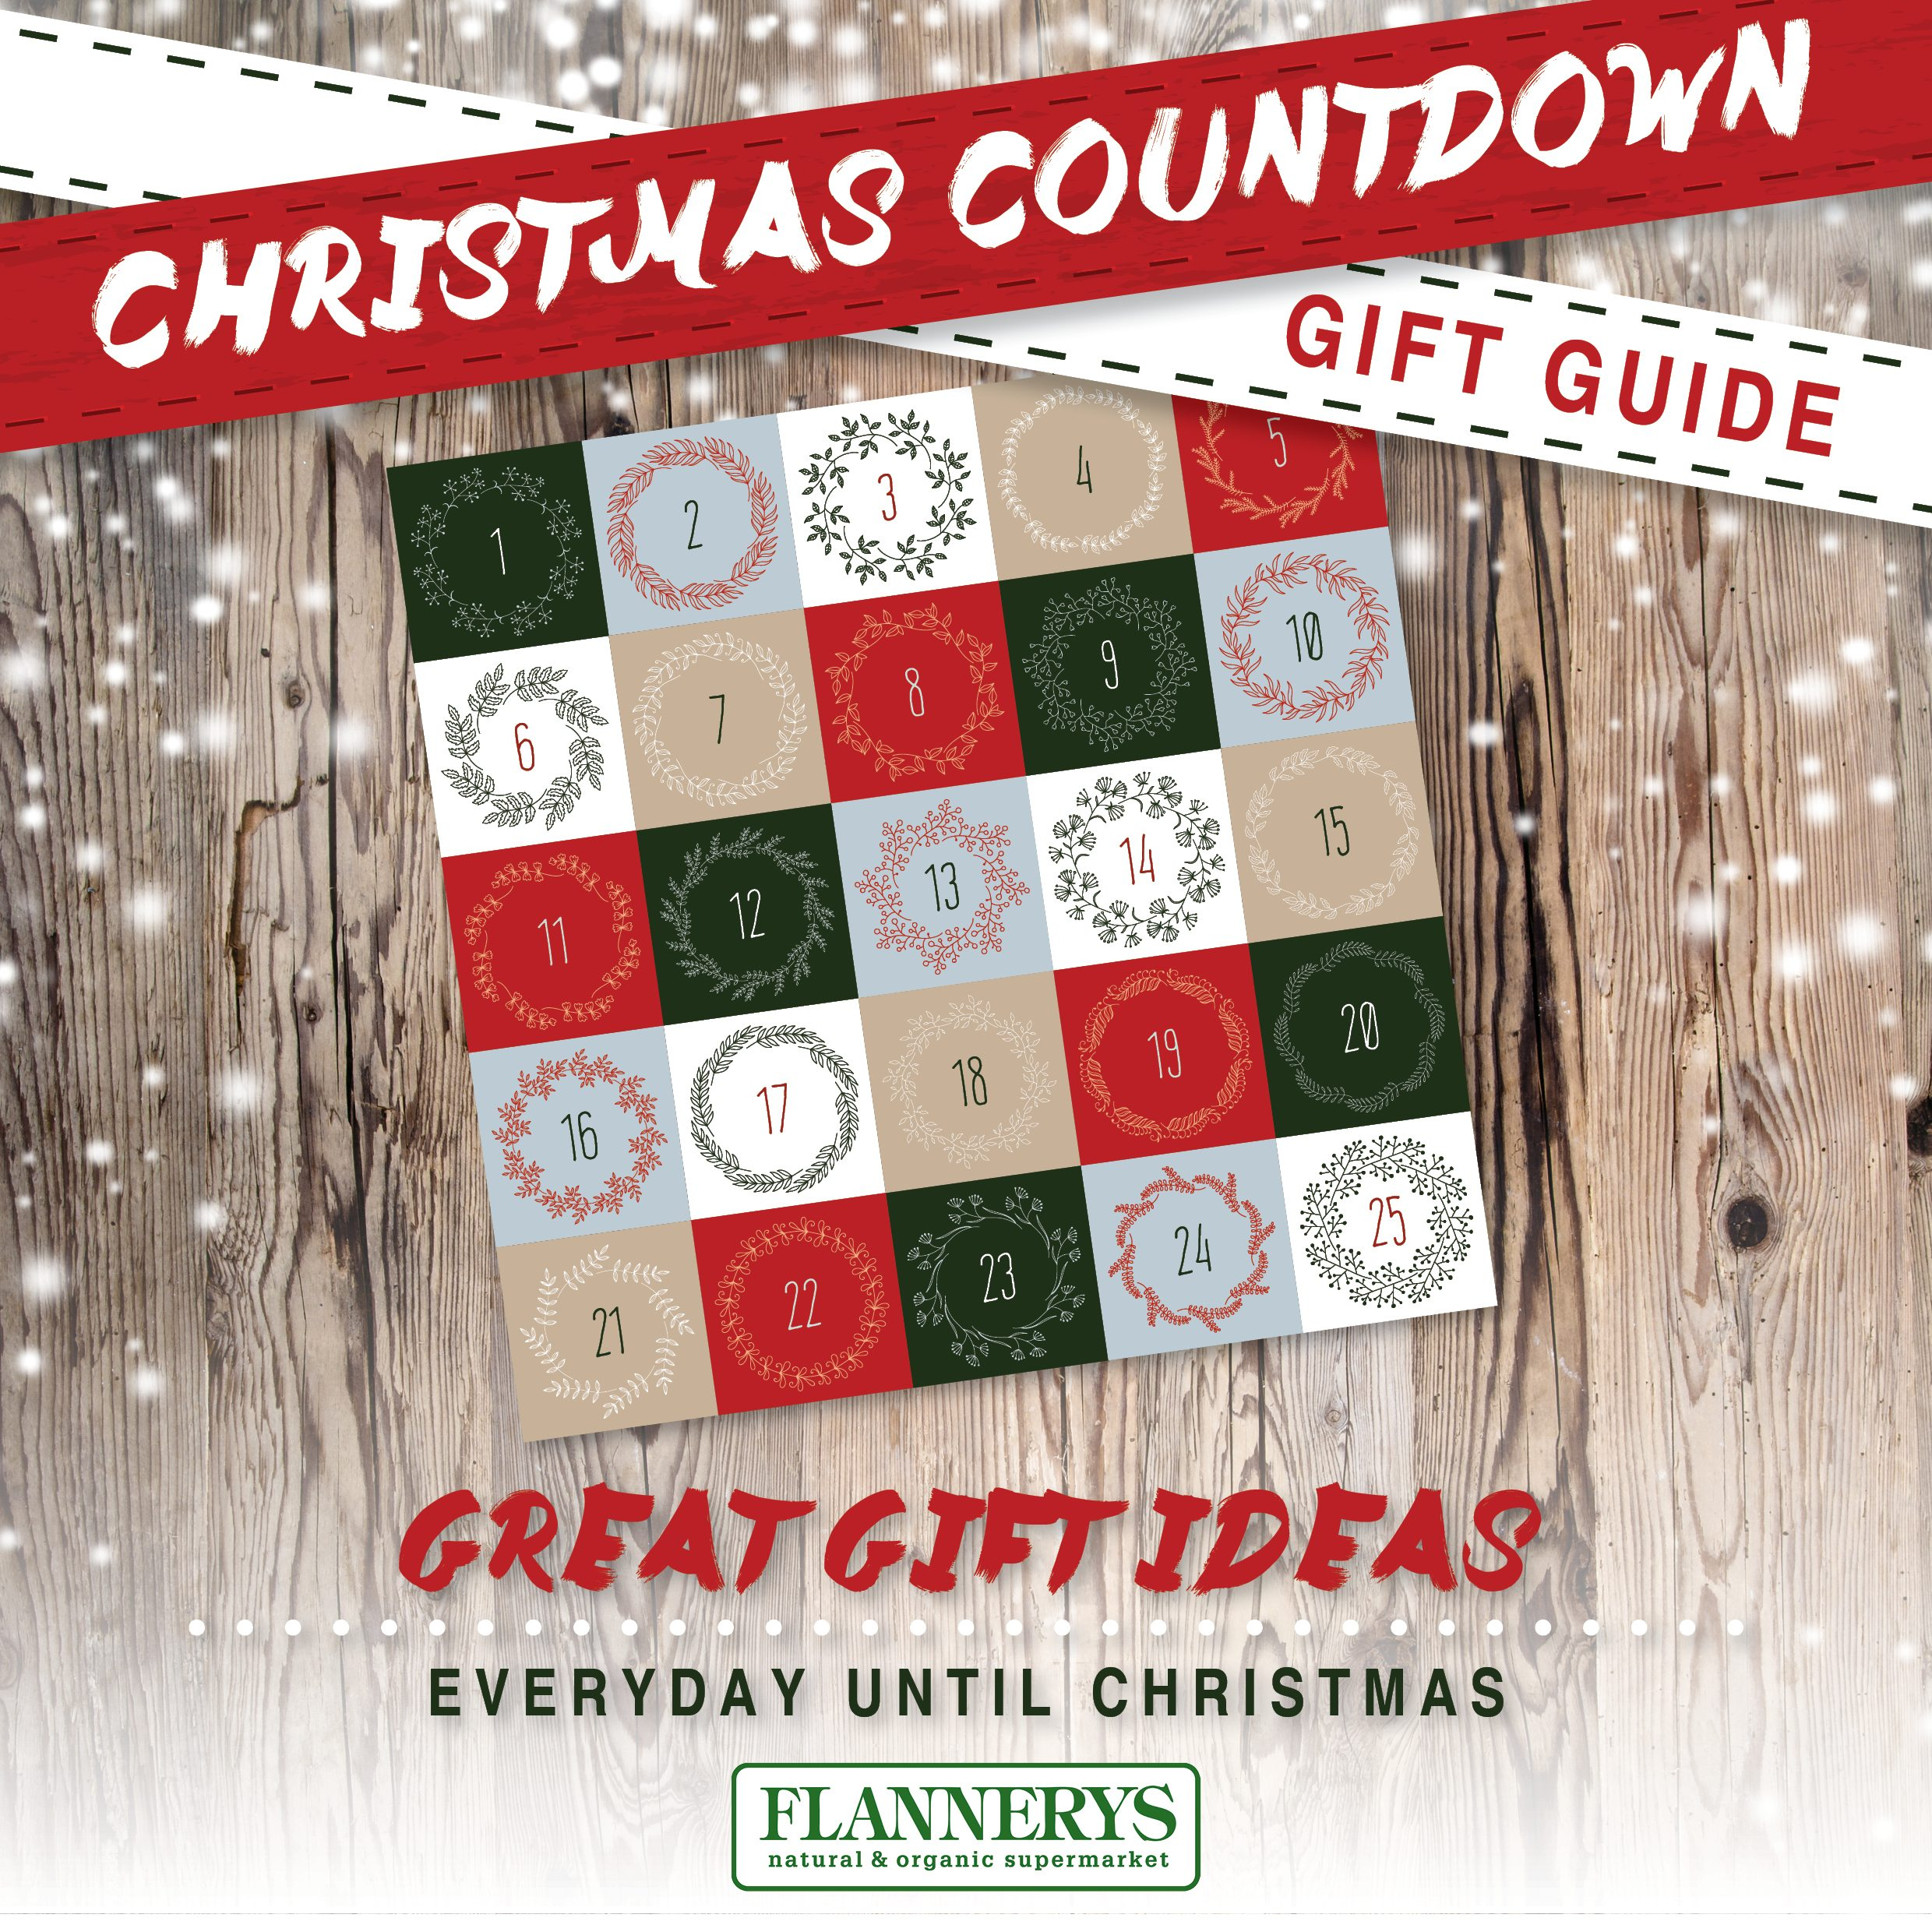 Christmas Countdown Gift Guide